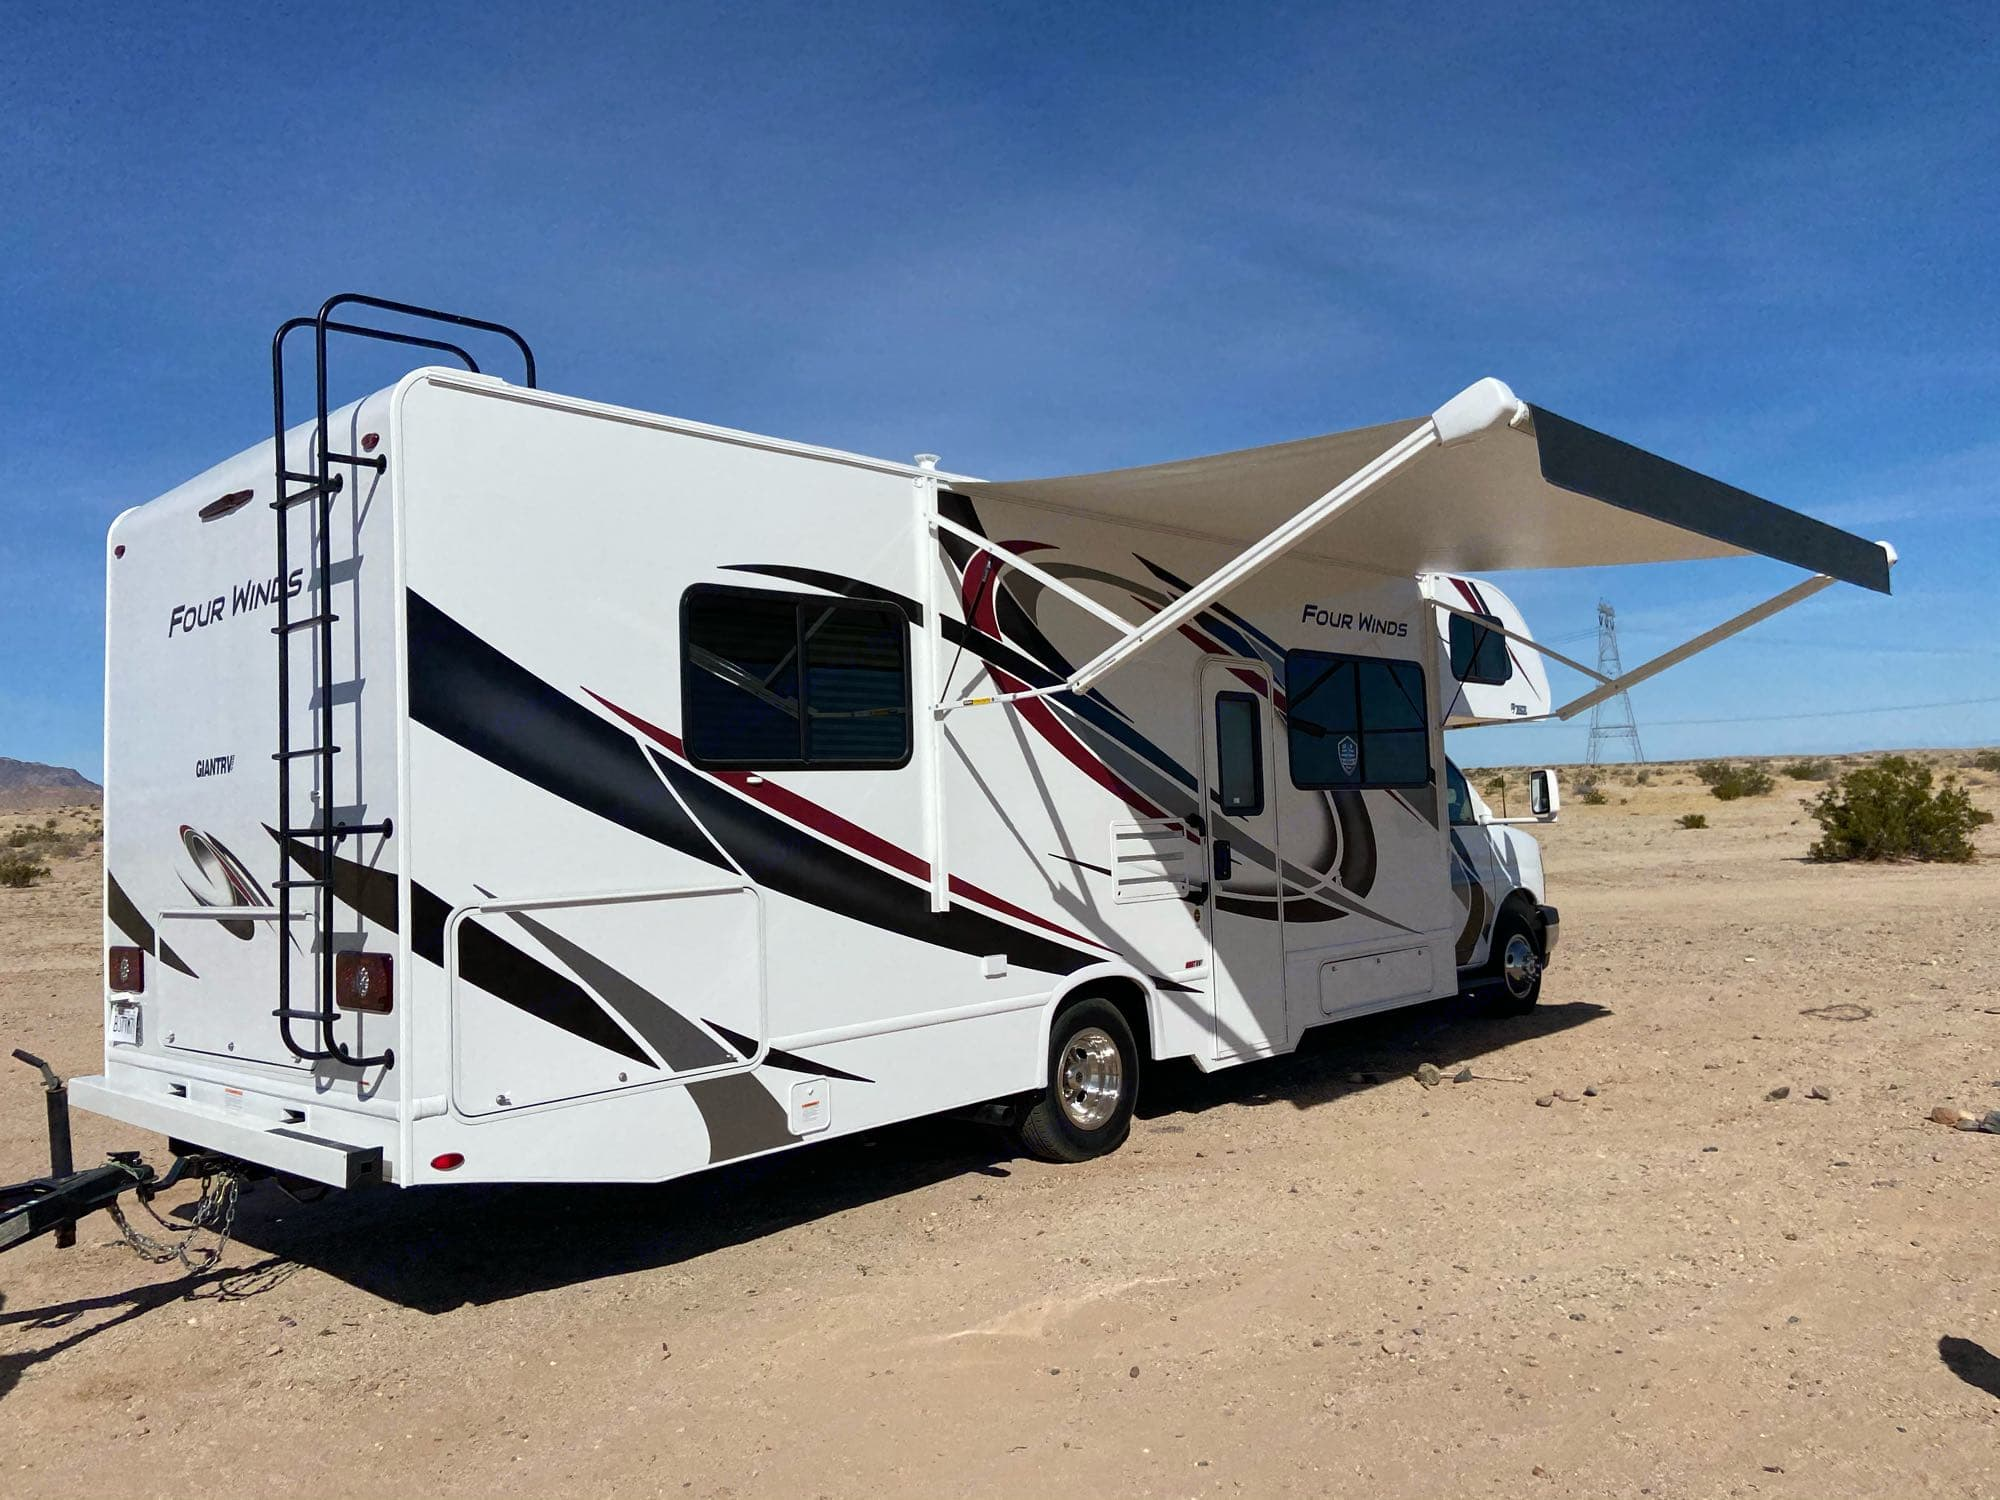 Electric Awning with LED Light. Thor Motor Coach Four Winds 2021